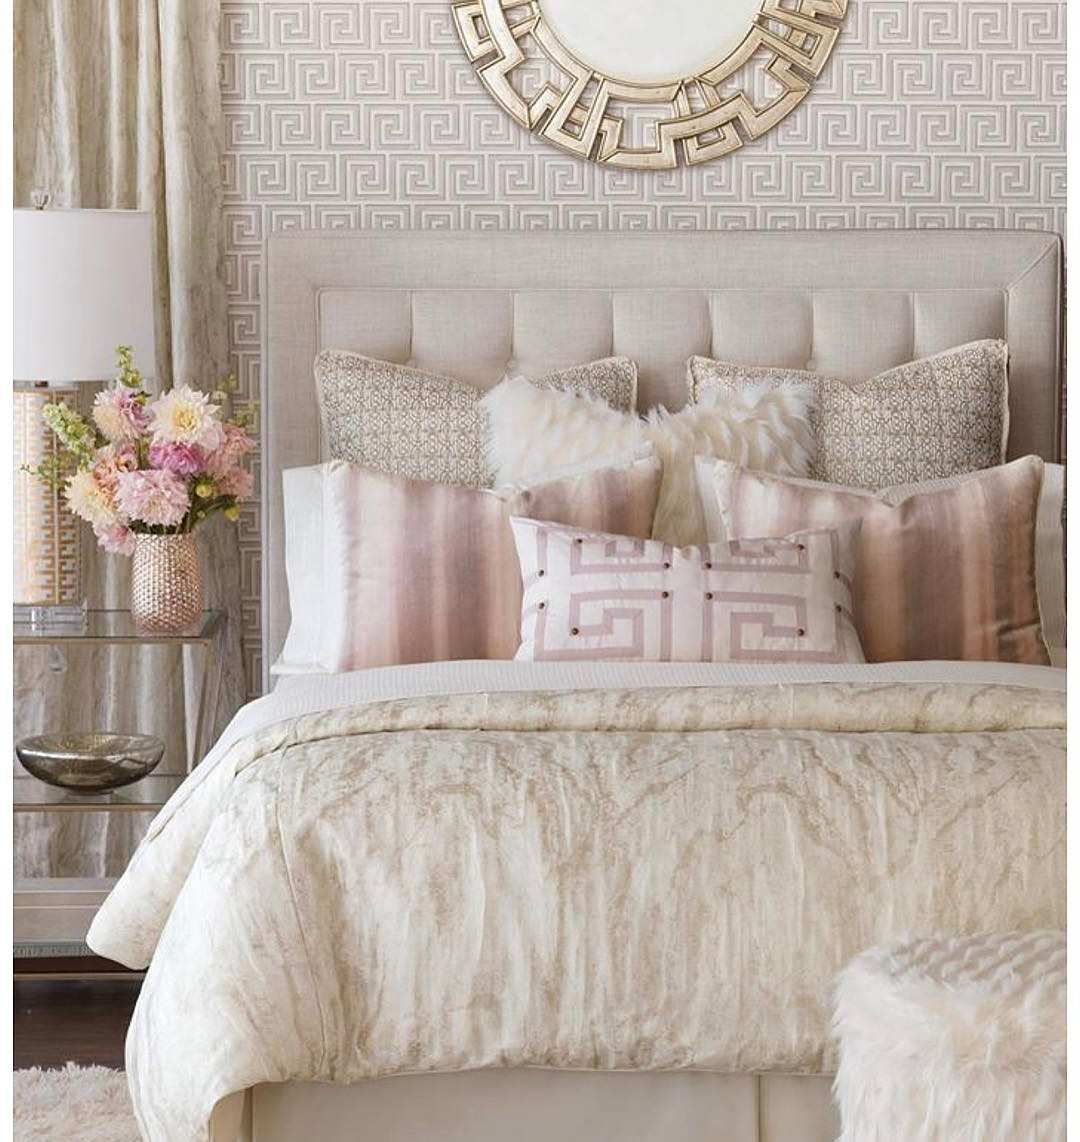 Blush Tones... The New Neutral!